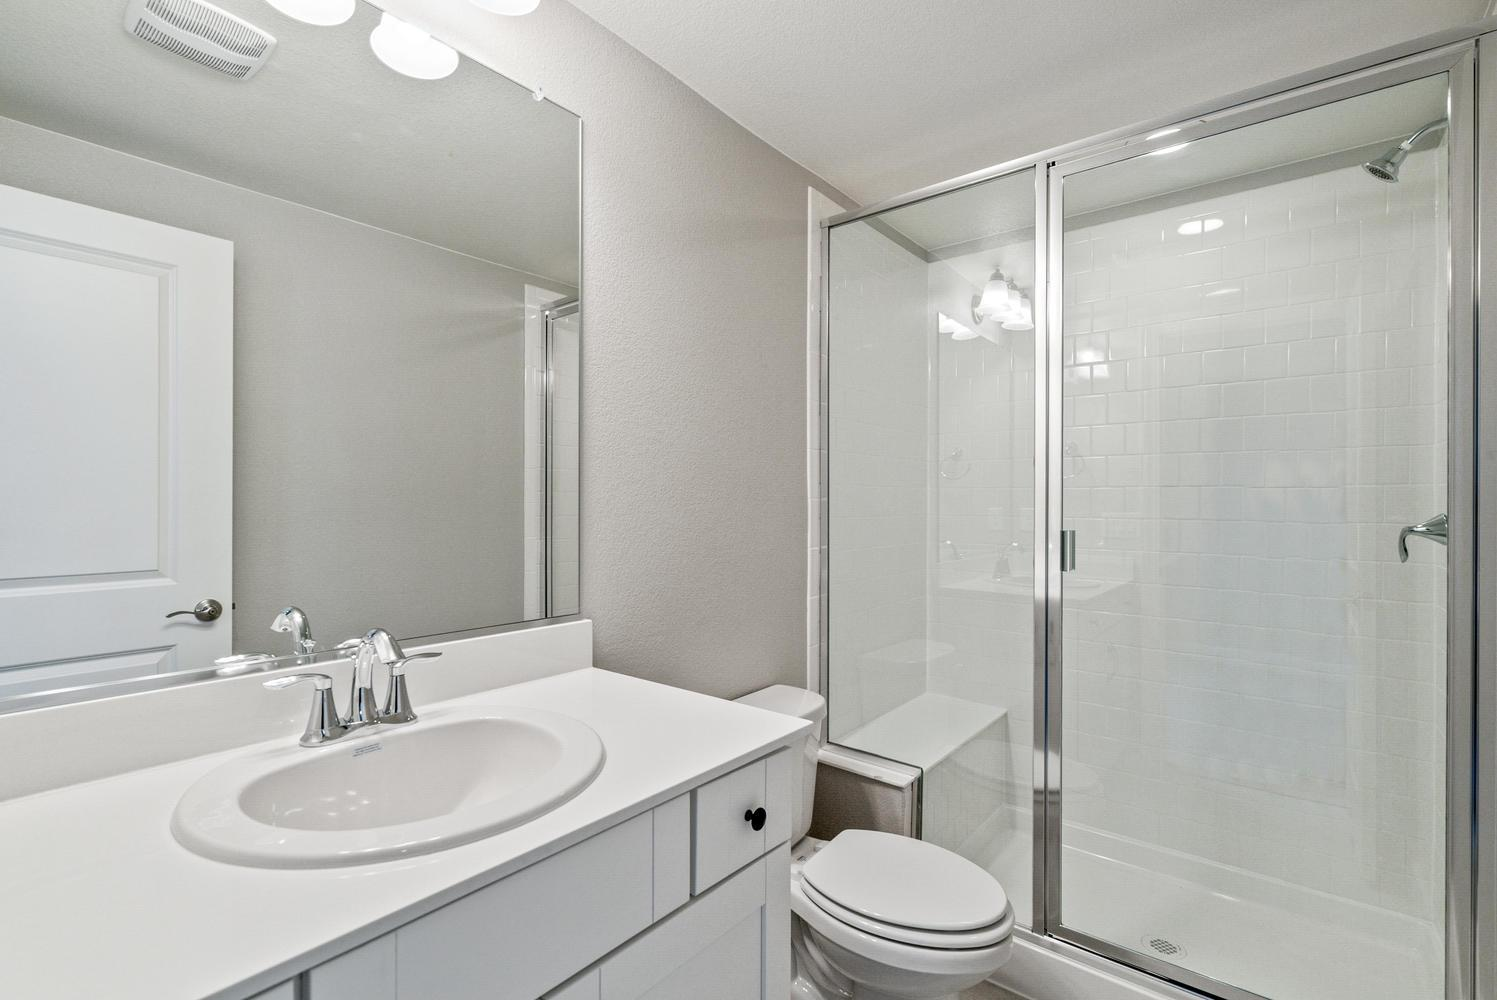 Bathroom featured in the Longs Peak By D.R. Horton in Fort Collins-Loveland, CO